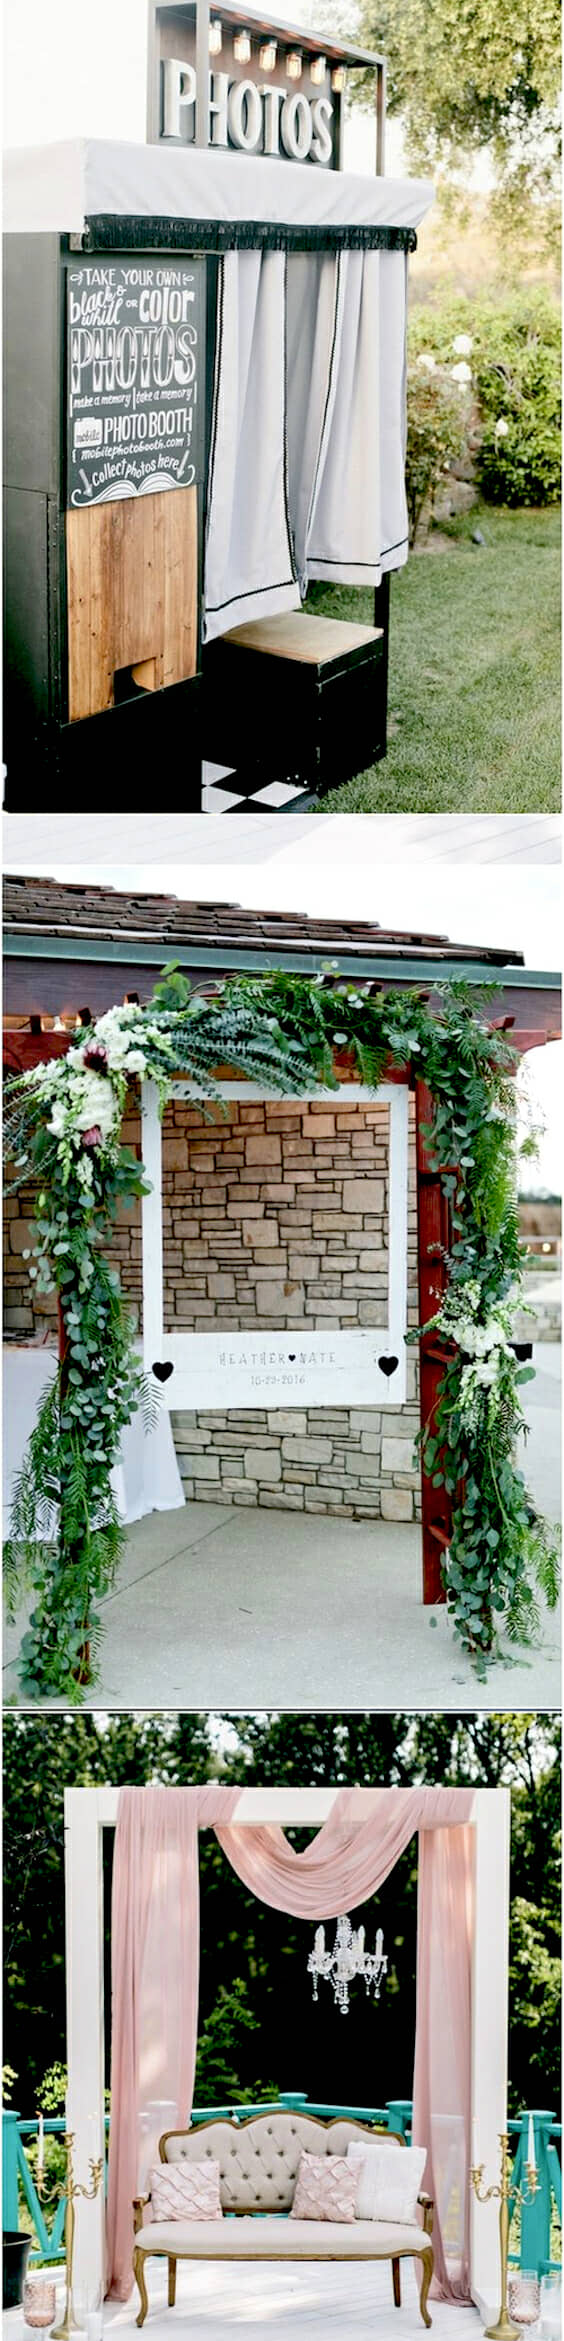 Unique wedding photo booth ideas.